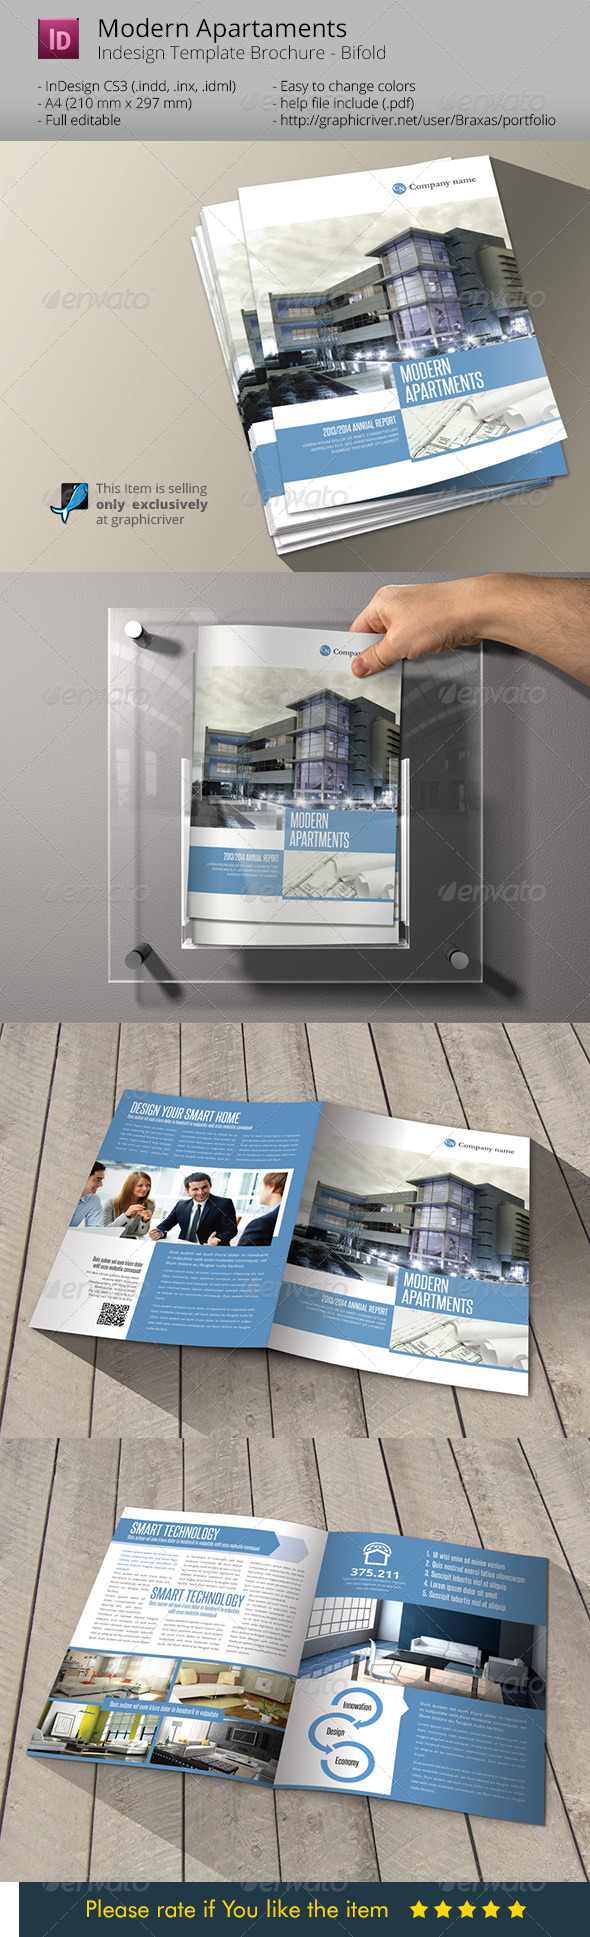 GraphicRiver Modern Apartaments Indesign Template Brochure A4 6336527